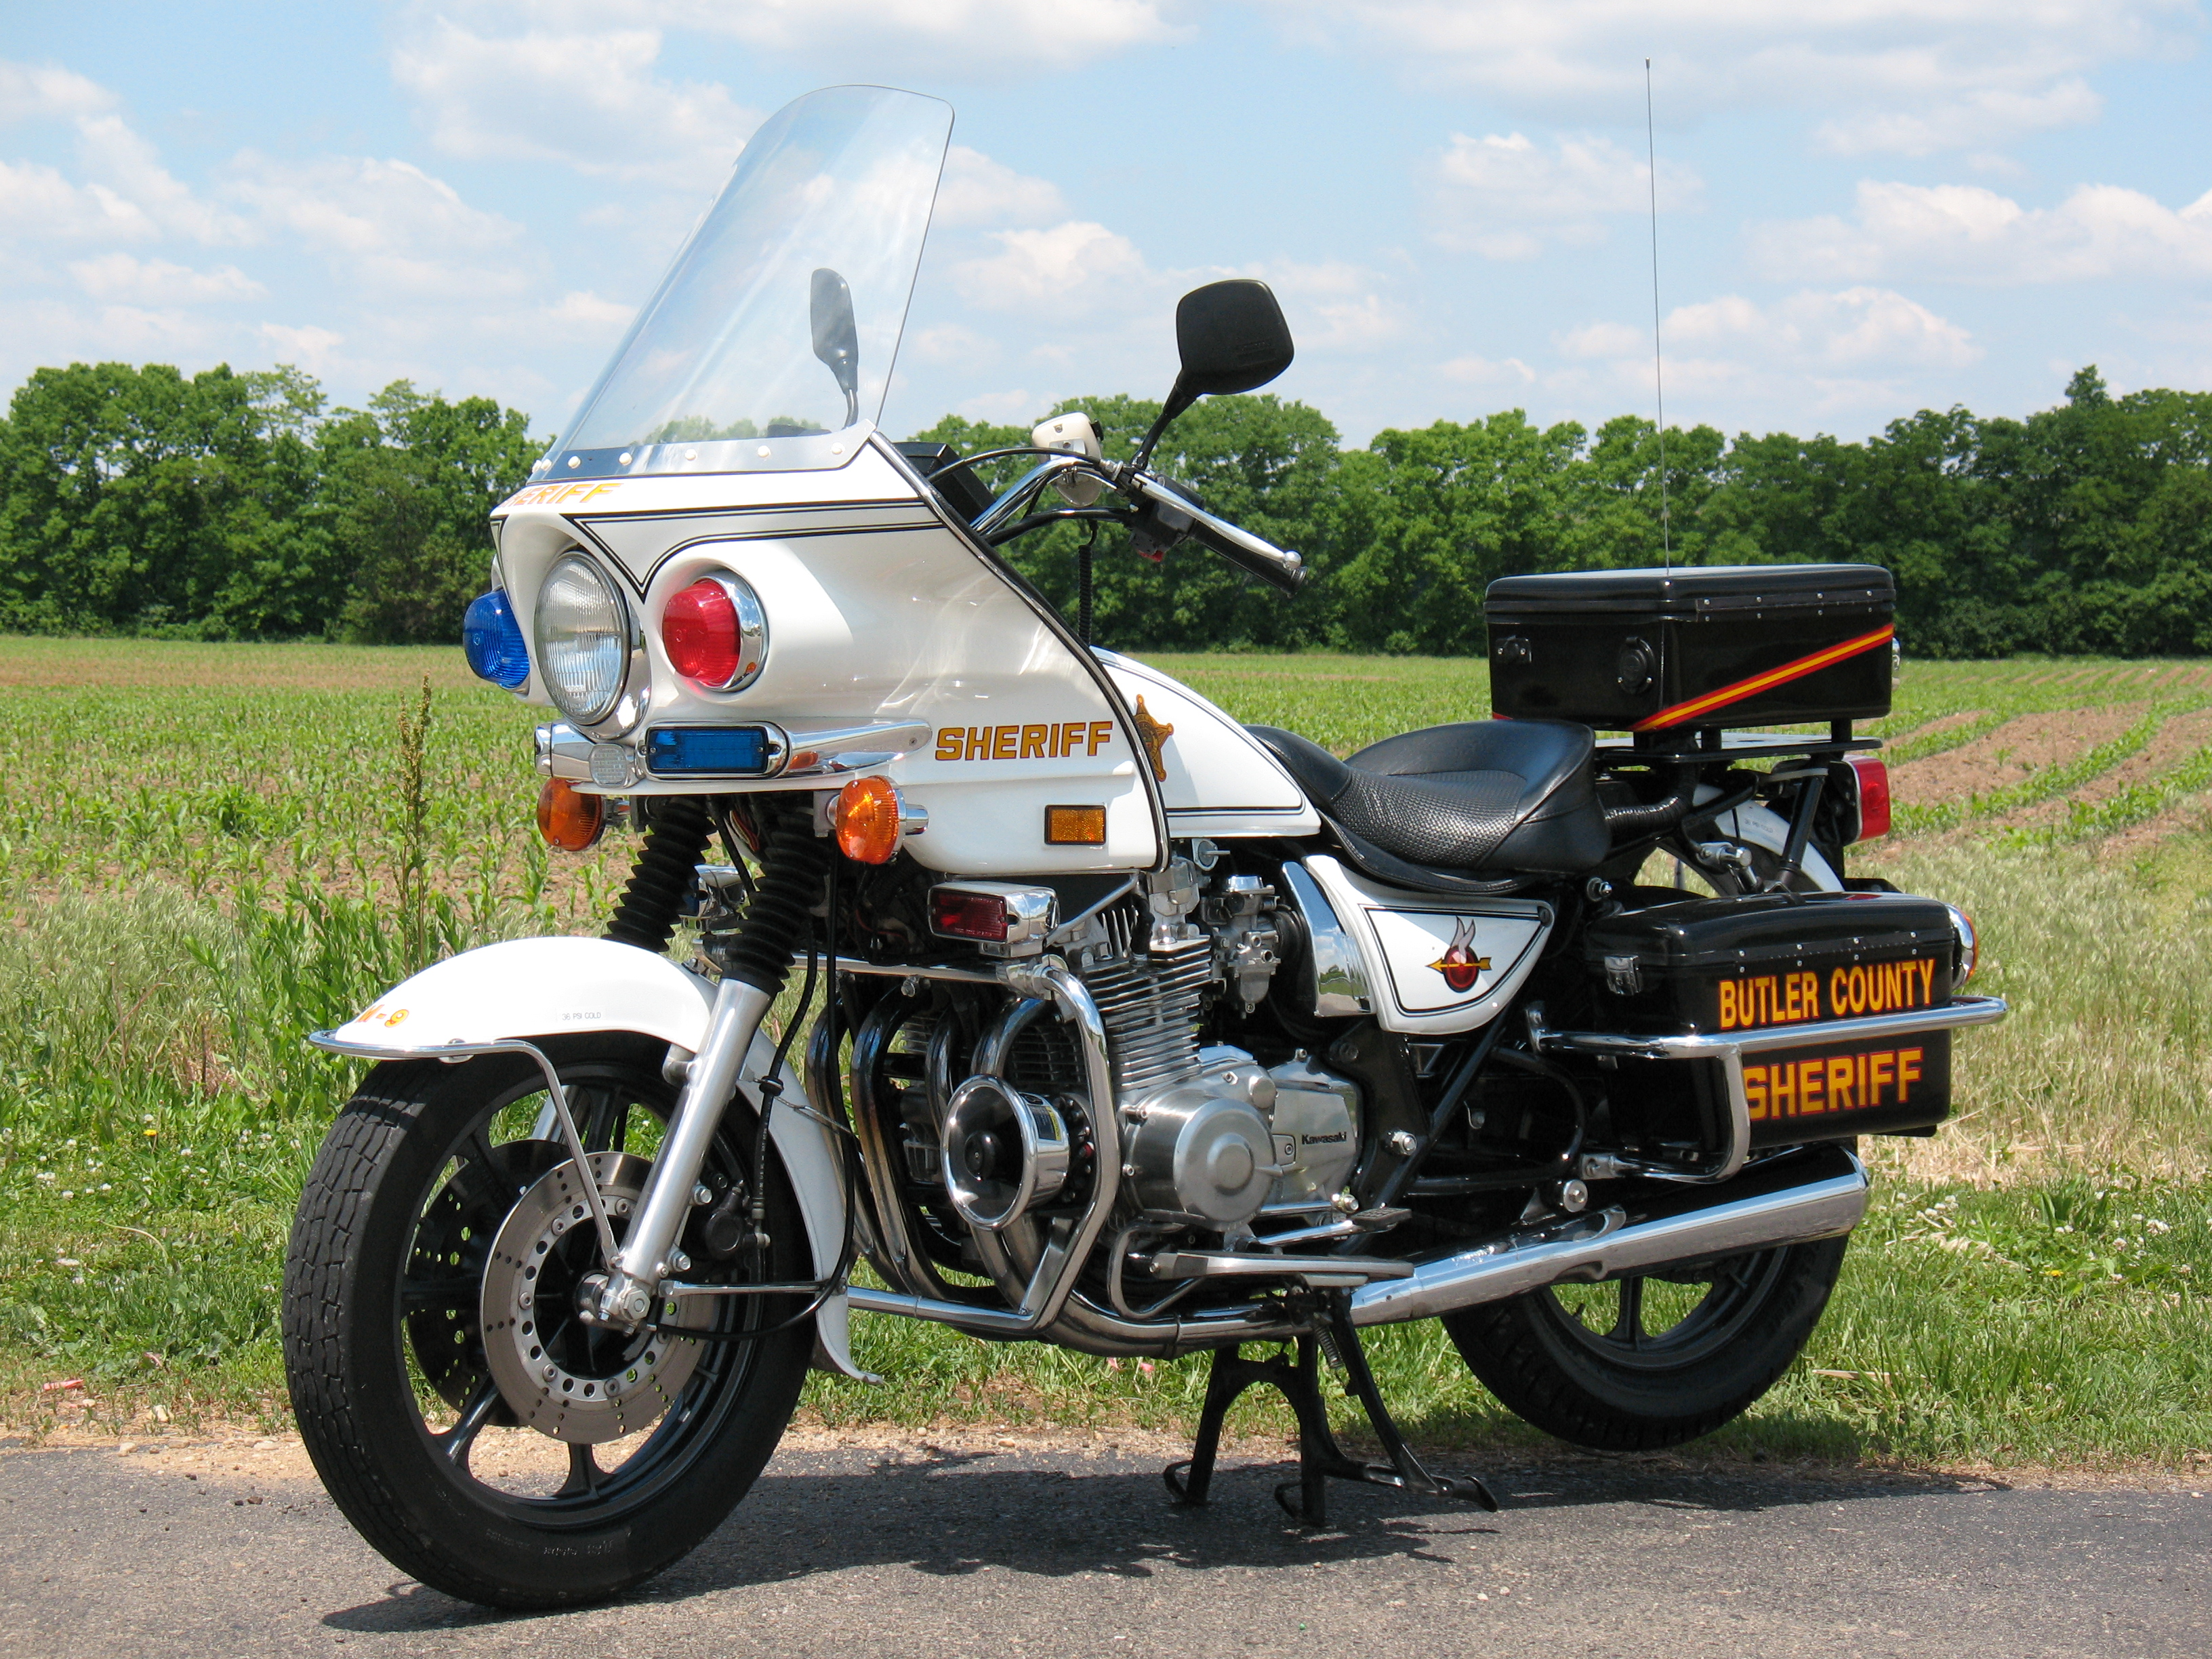 kawasaki kz police bikes - chin on the tank – motorcycle stuff in